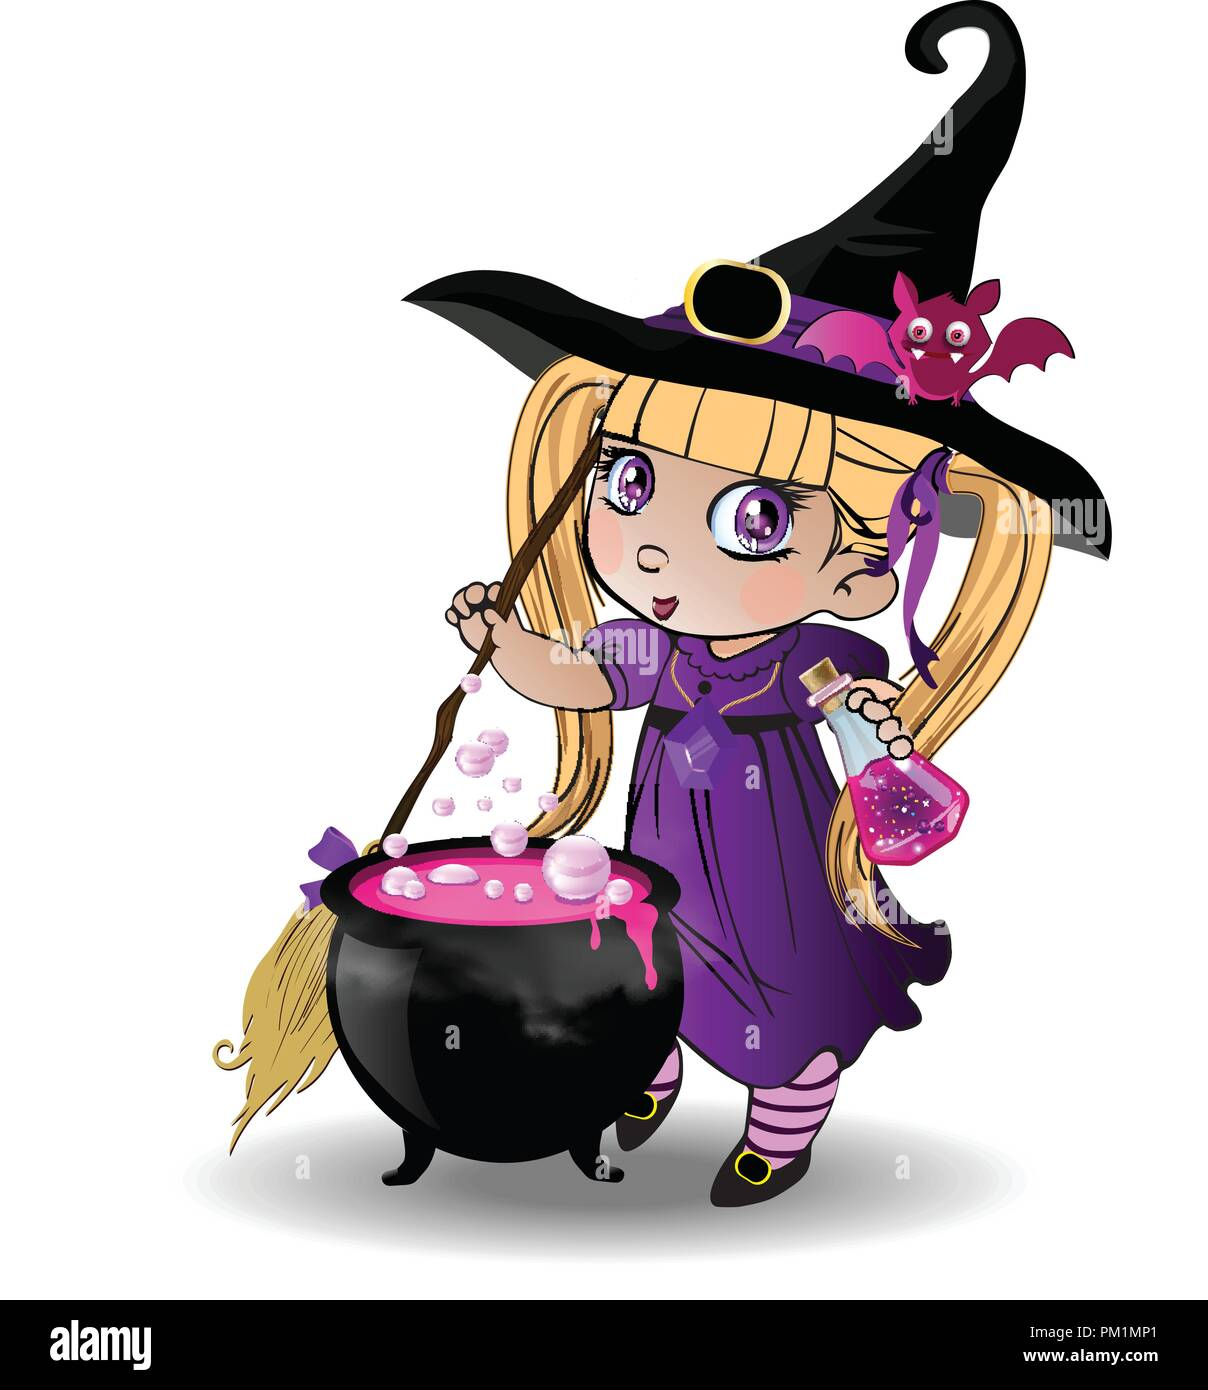 Vector cartoon illustration of little blonde baby witch girl in purple dress and cute bat on her hat stir boiling potion with broomstick in cauldron o - Stock Image